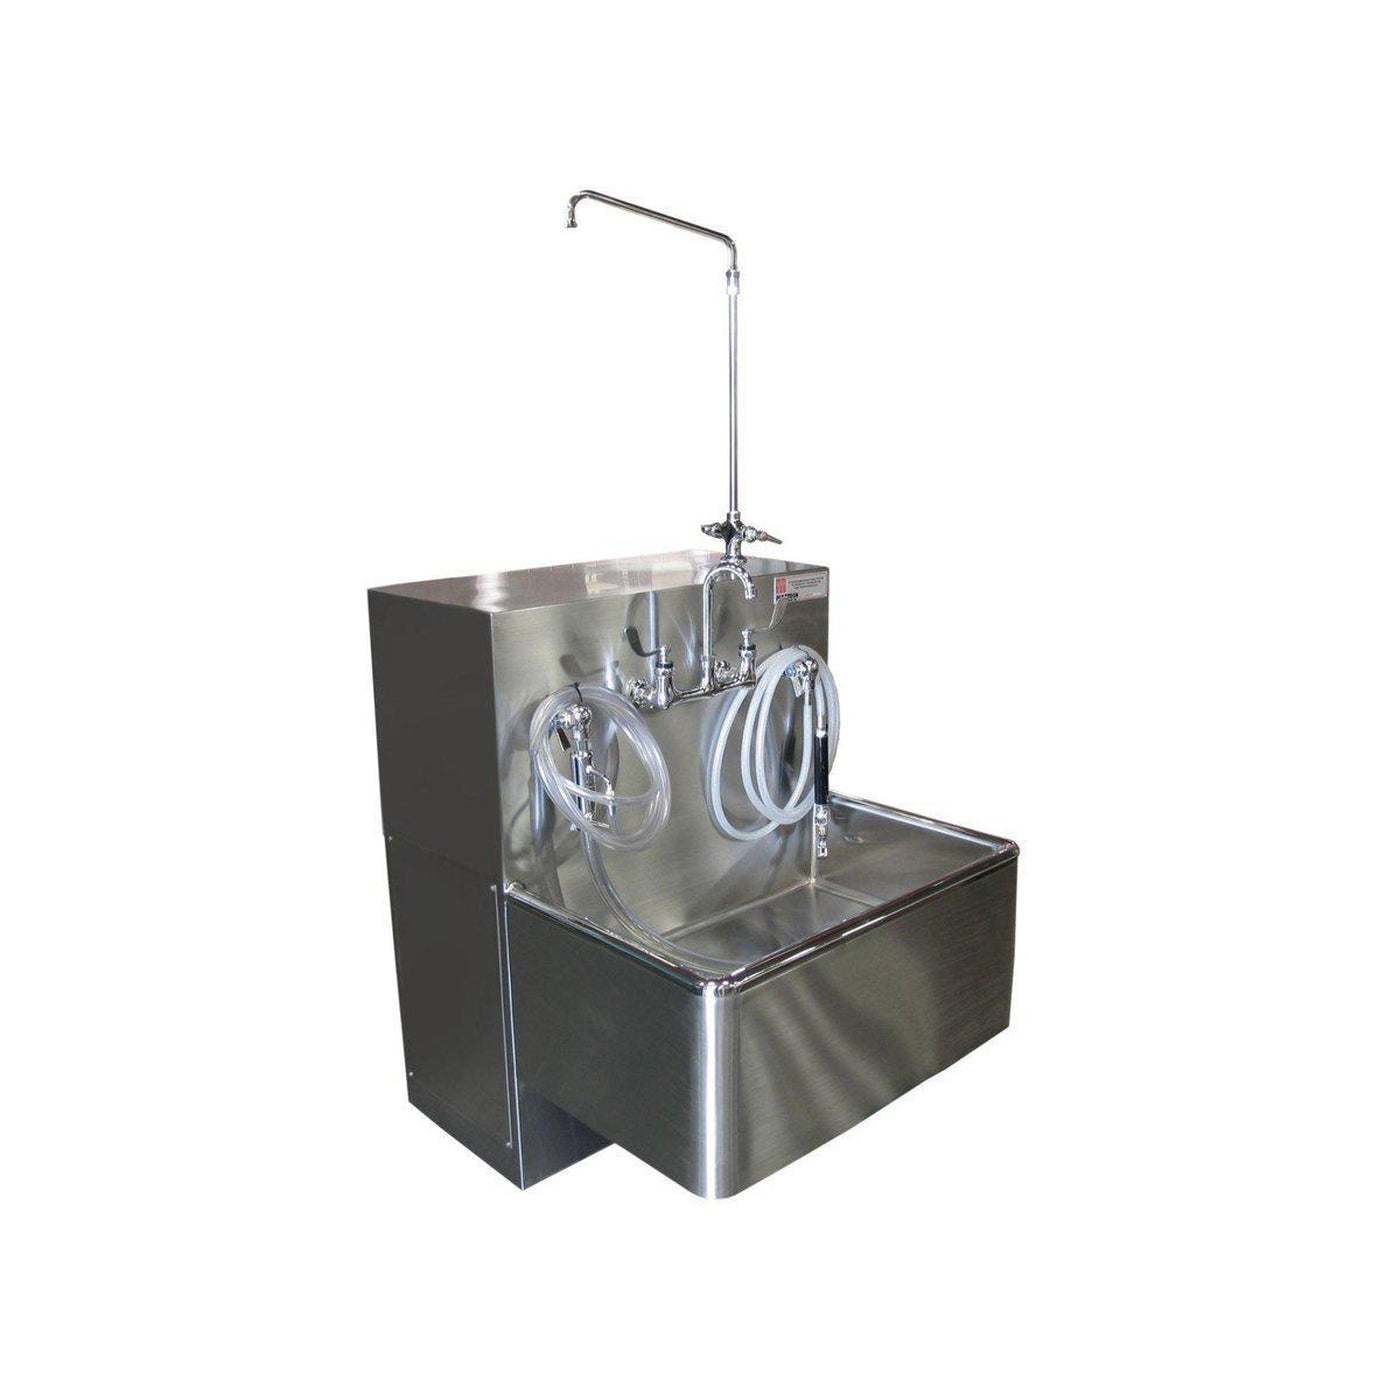 Stainless Steel Embalming Station-Sink Station-Mortech Manufacturing Company Inc. Quality Stainless Steel Autopsy, Morgue, Funeral Home, Necropsy, Veterinary / Anatomy, Dissection Equipment and Accessories